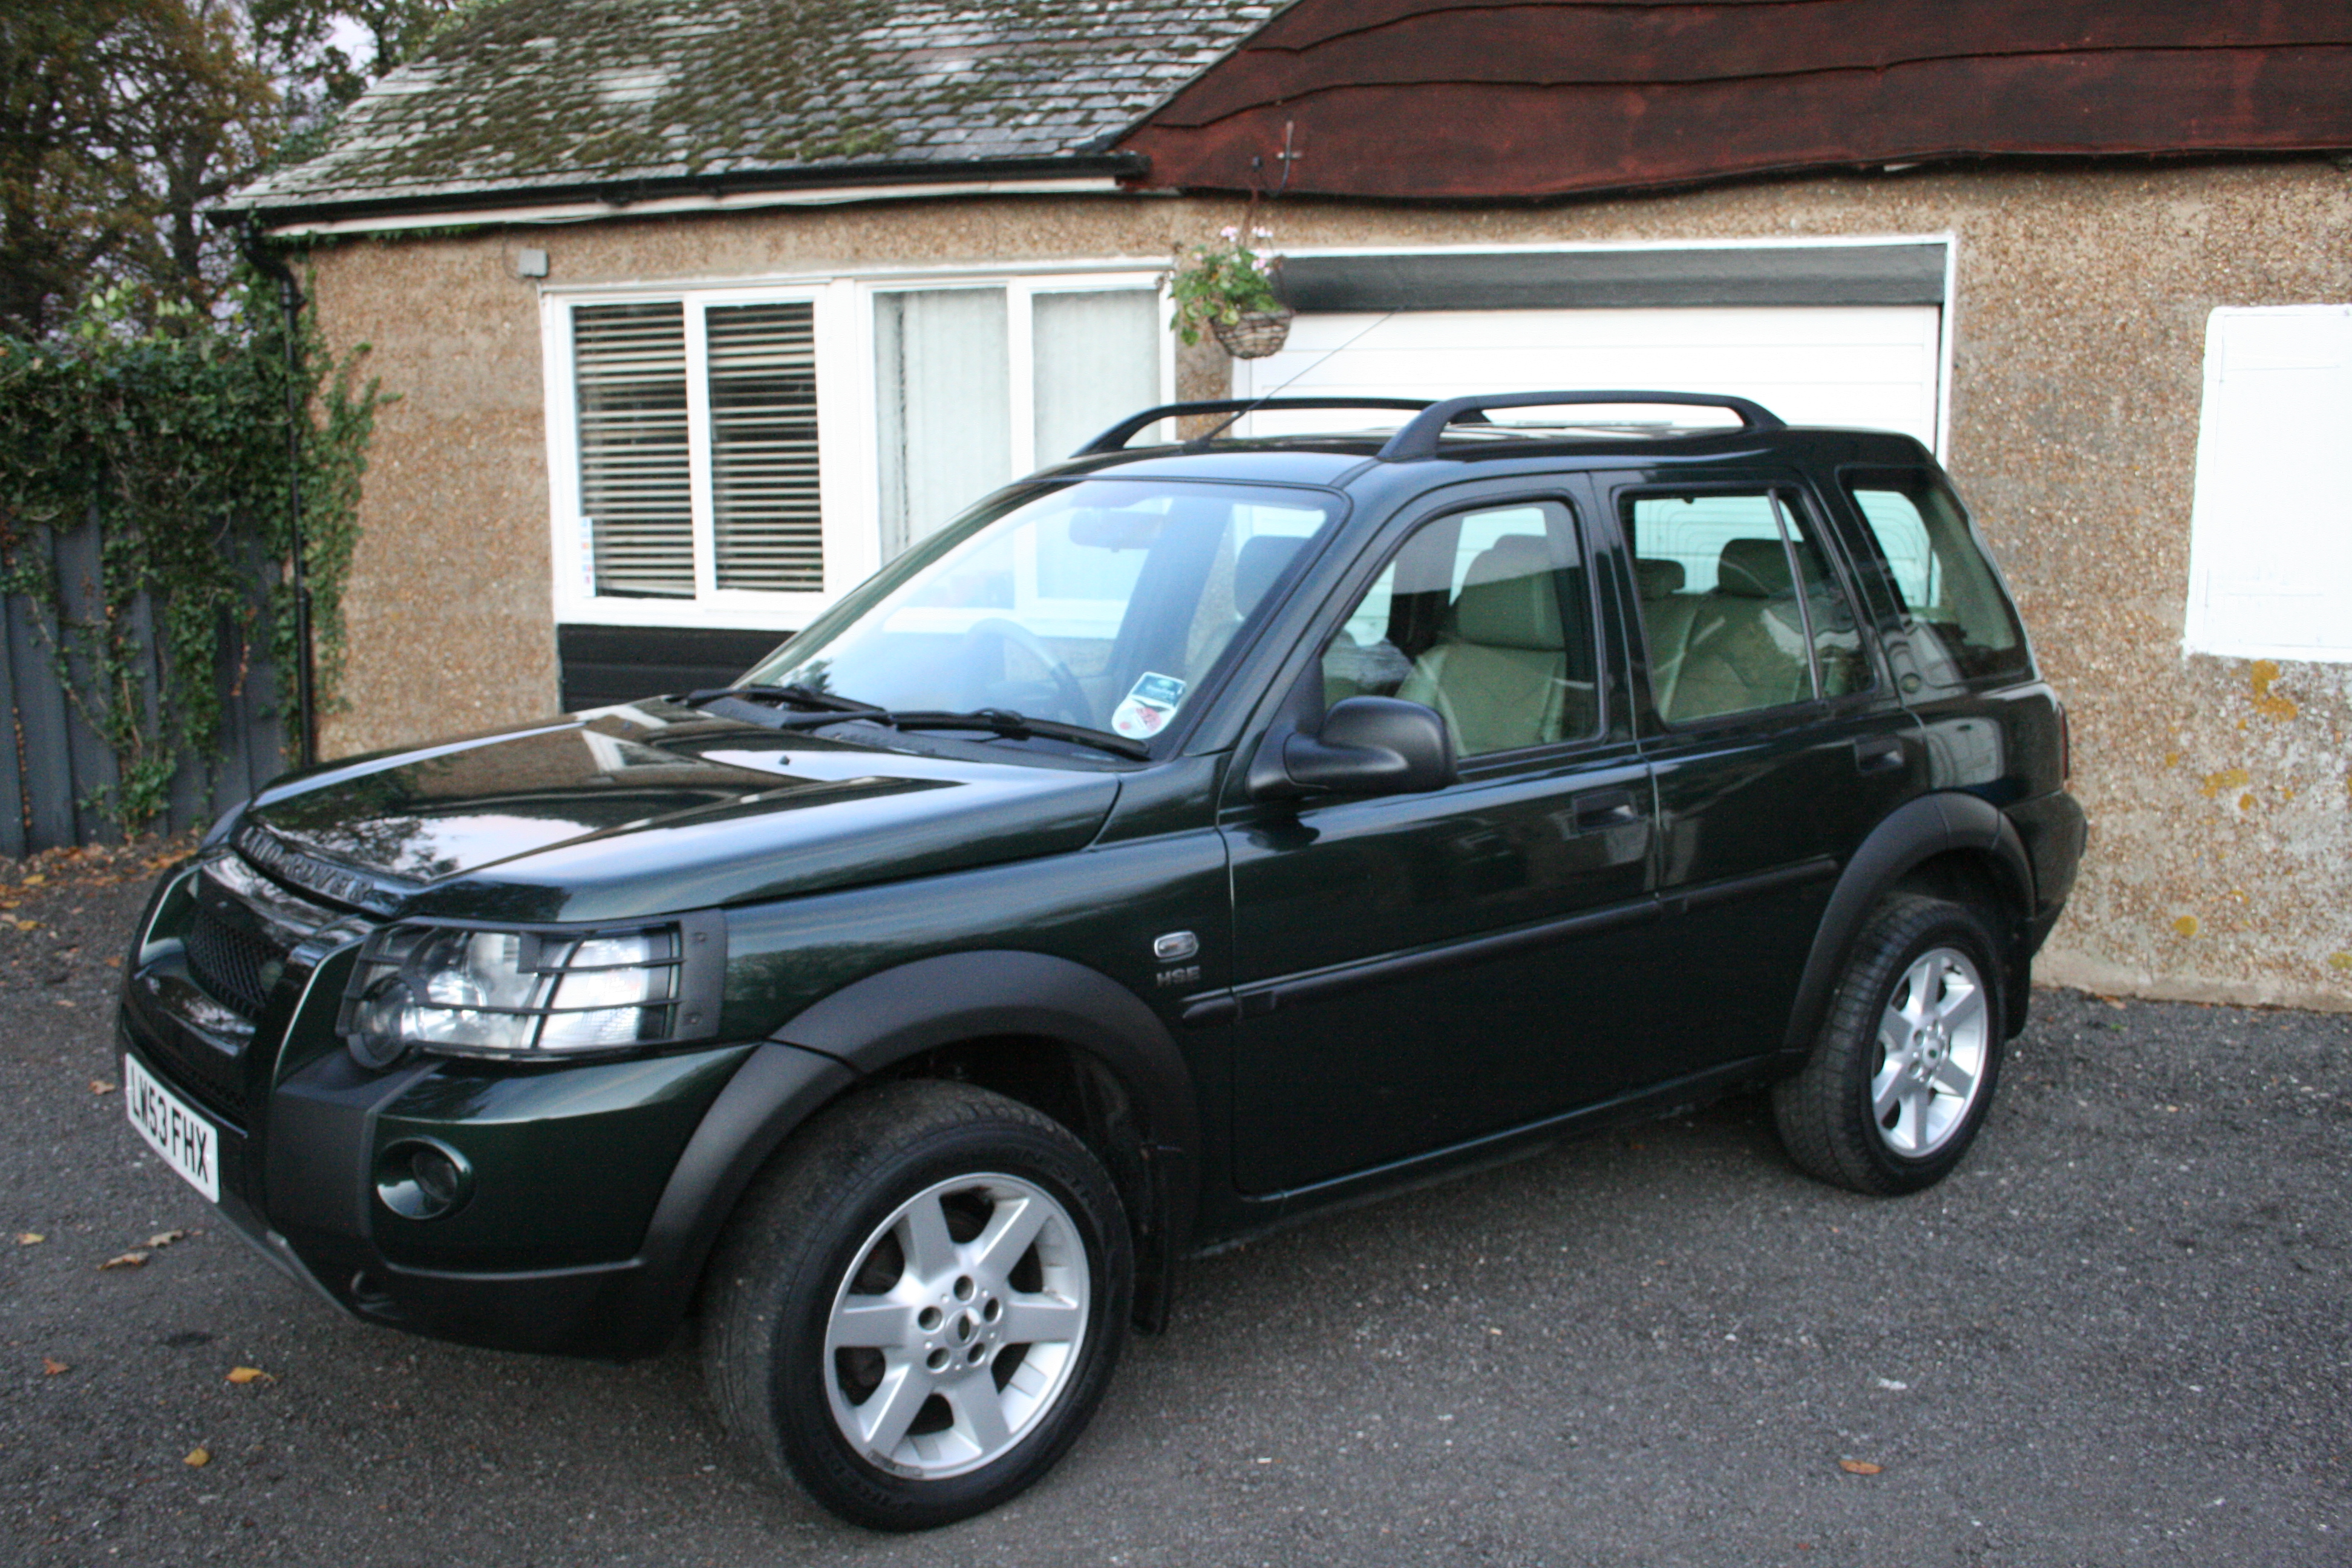 Freelander 1 land rover freelander 1 pinterest land rovers land rover freelander and range rovers